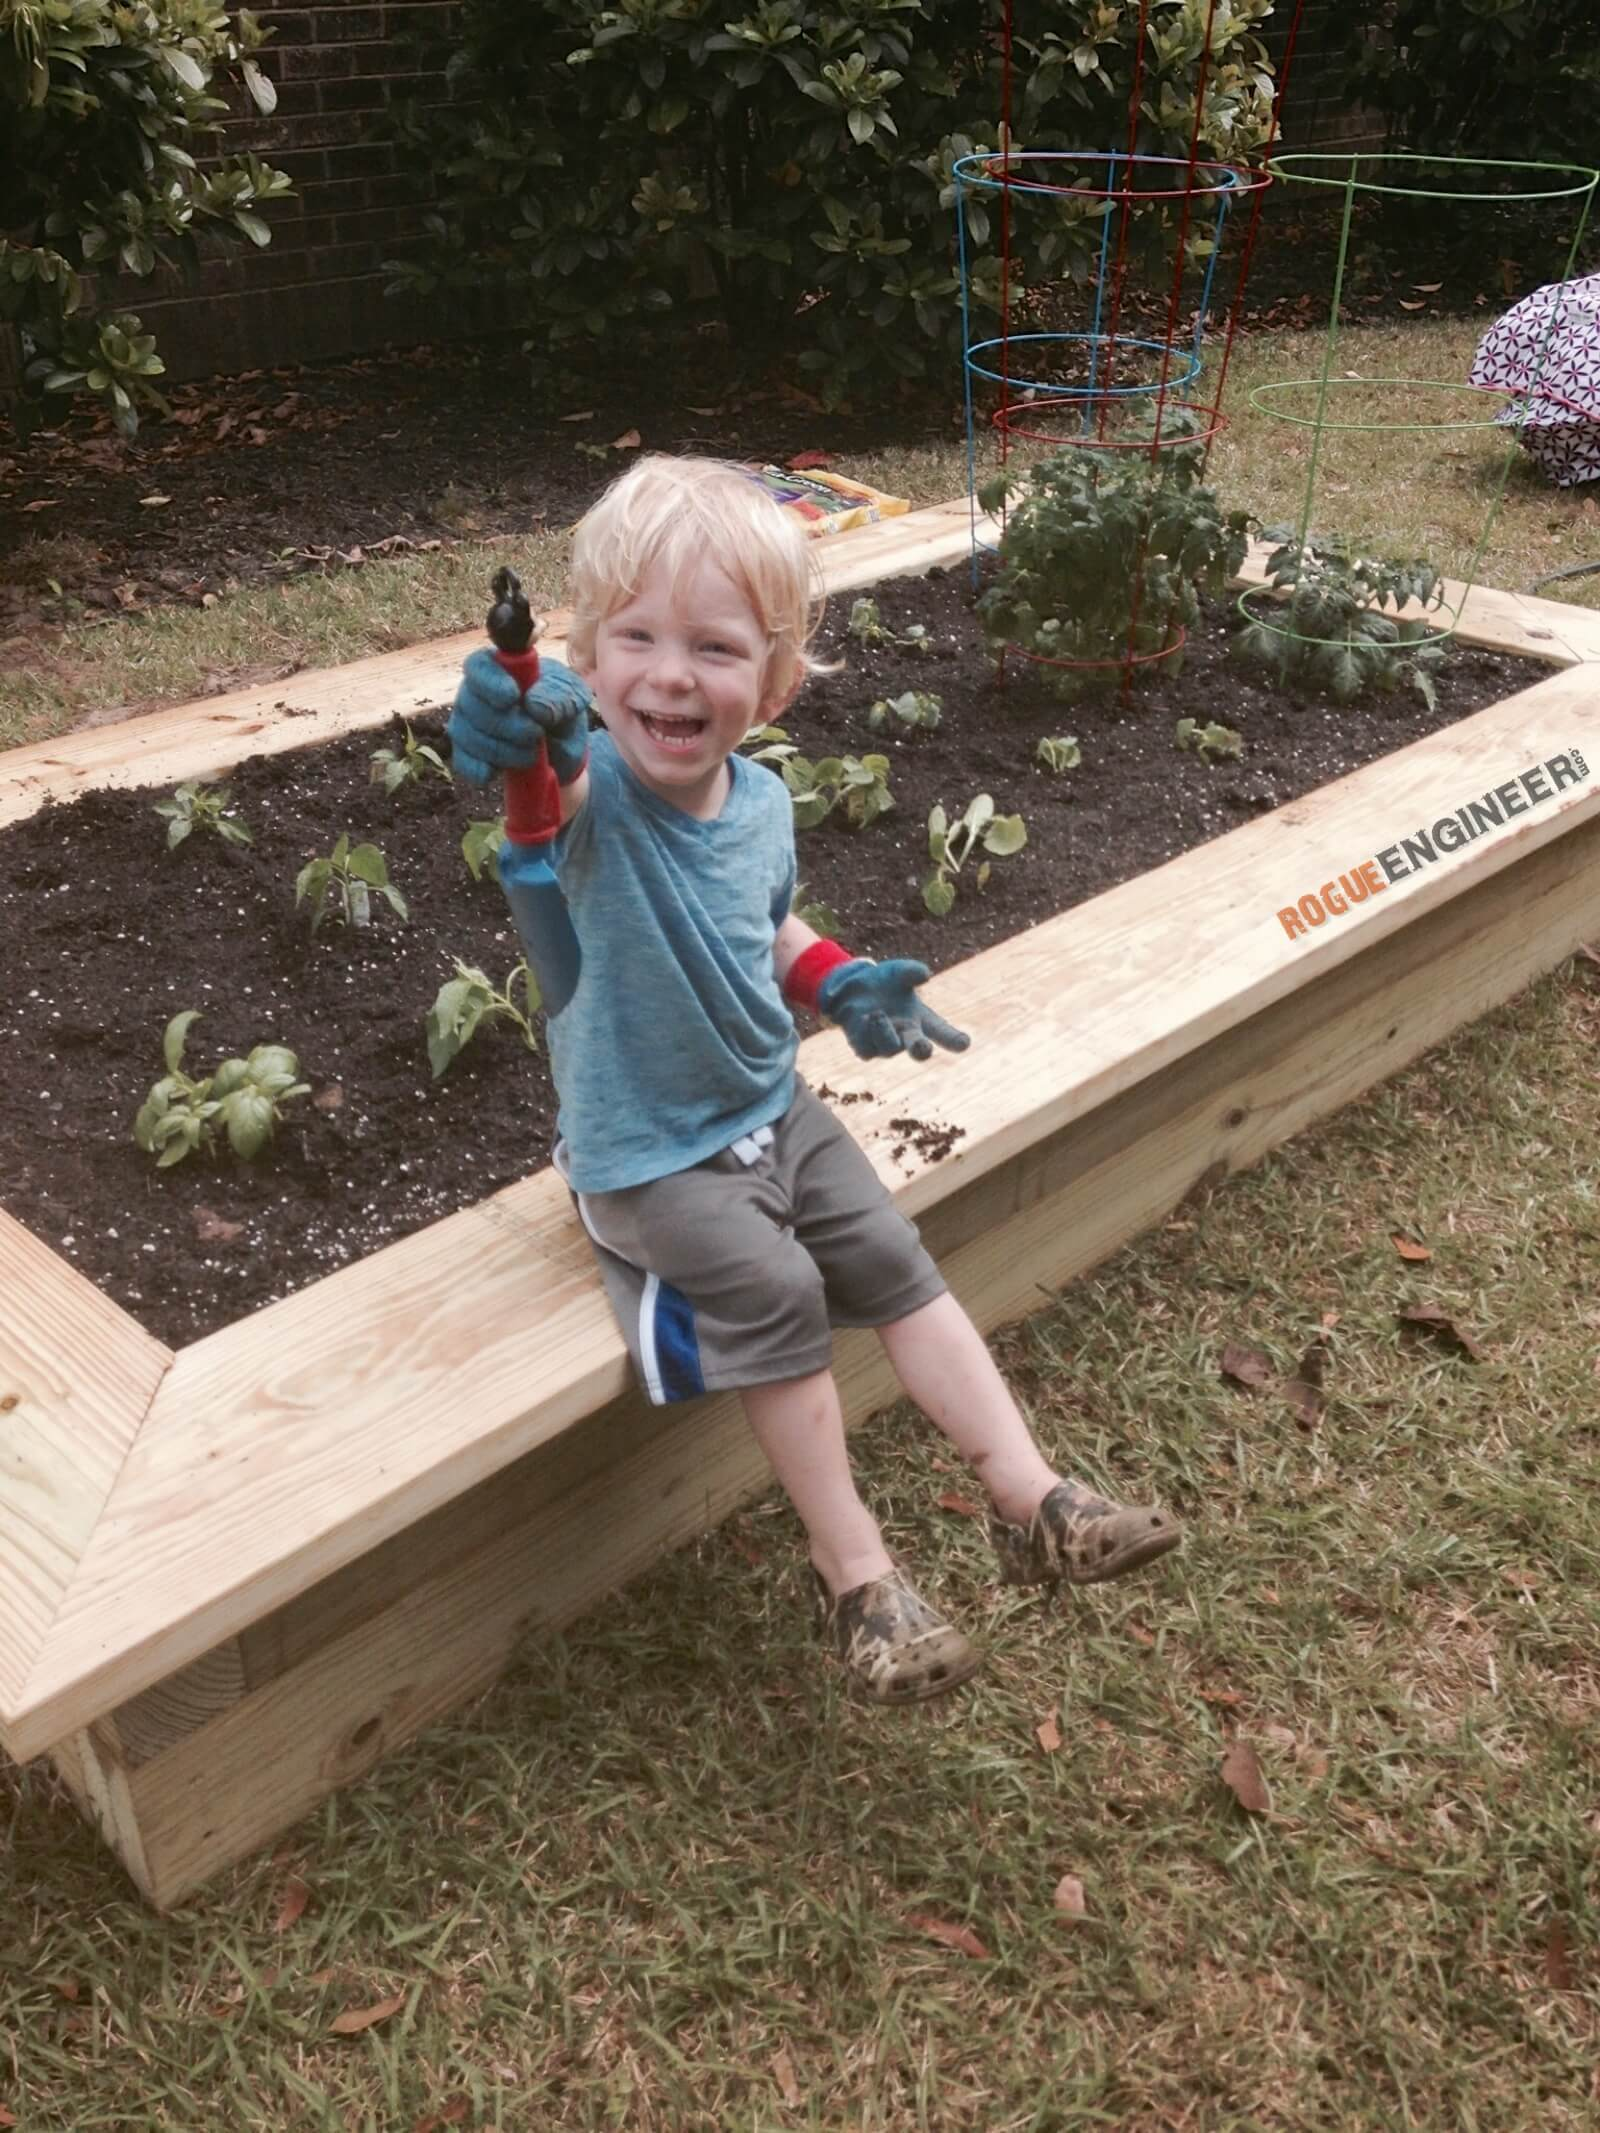 raised bed decoration build a how gallery garden beds to home outdoor tagans kitchen building